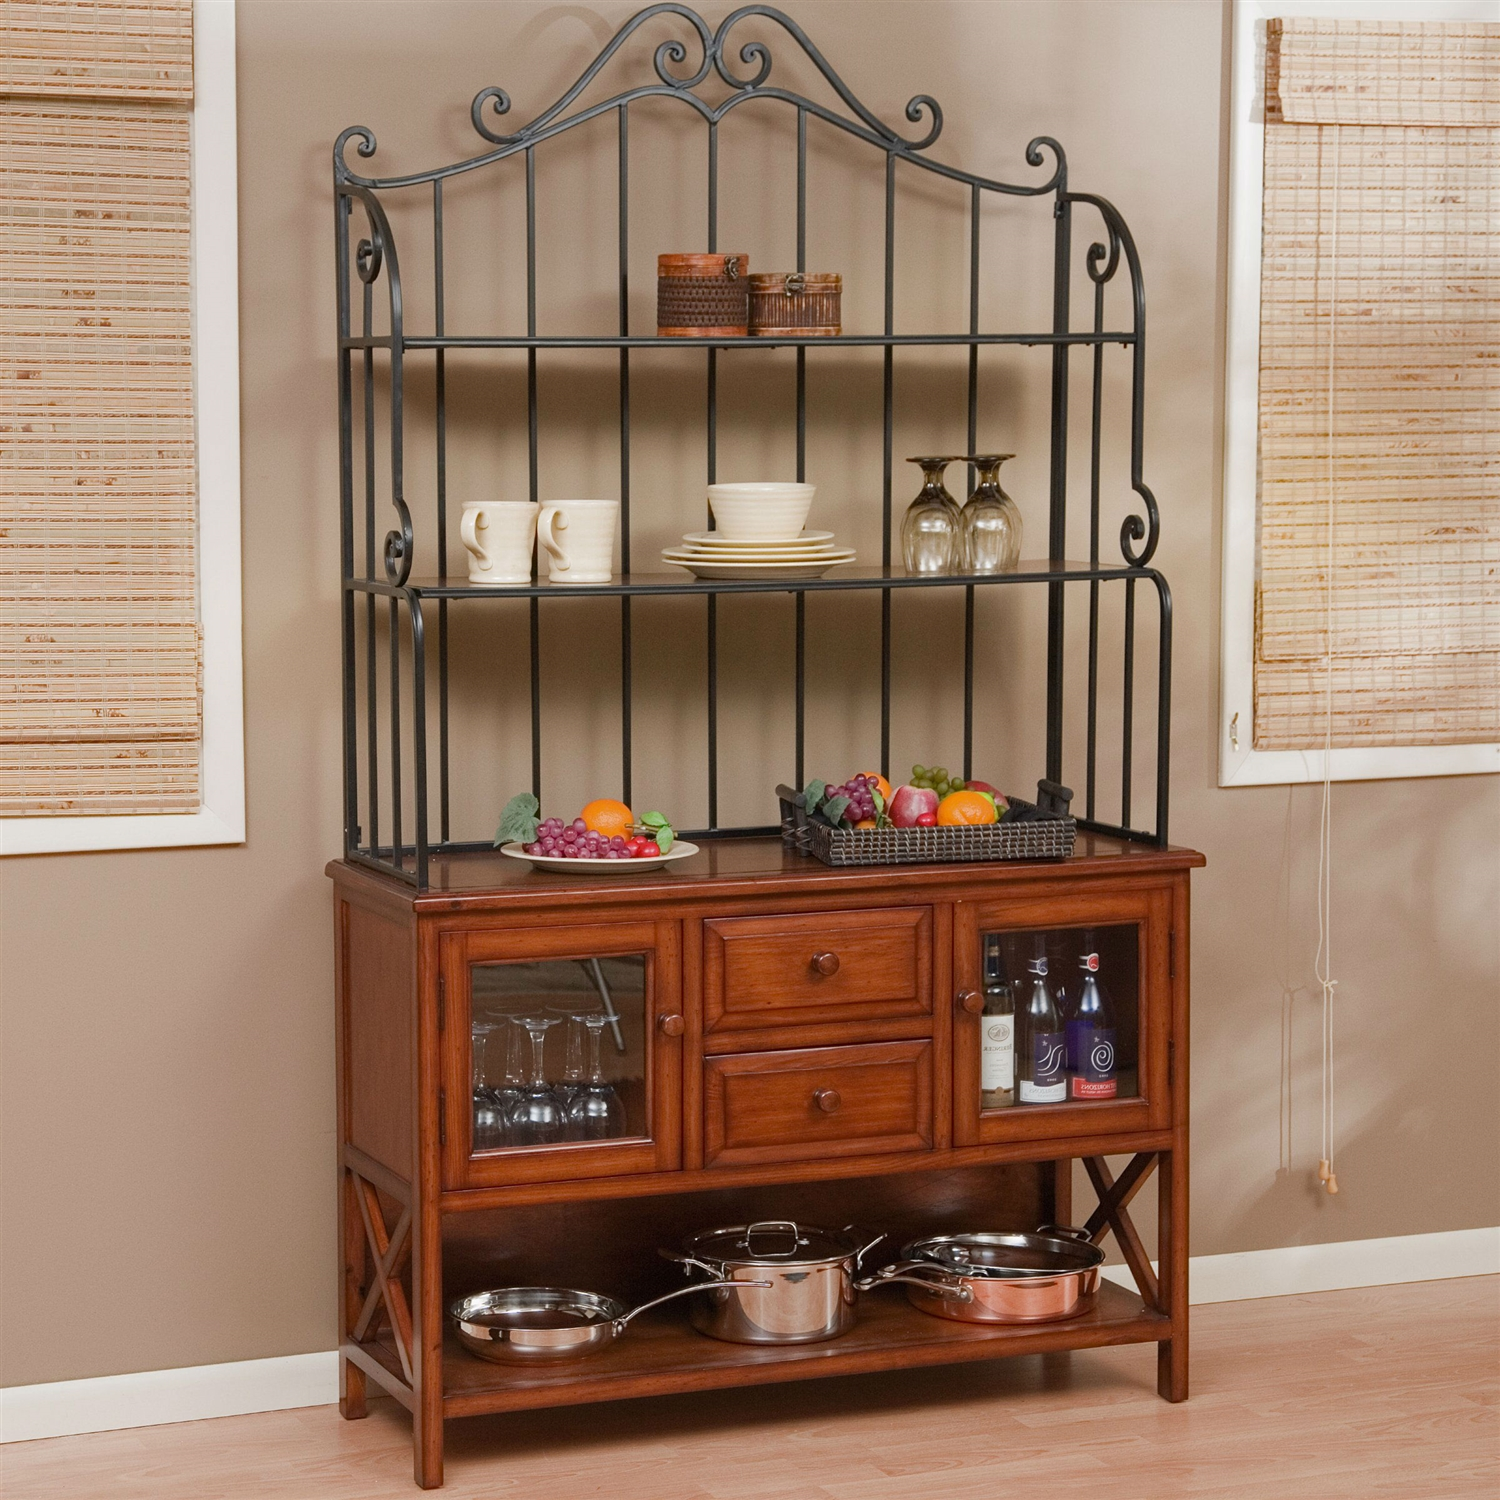 Wrought Iron Top  Inch Bakers Rack In Heritage Oak Wood Finish